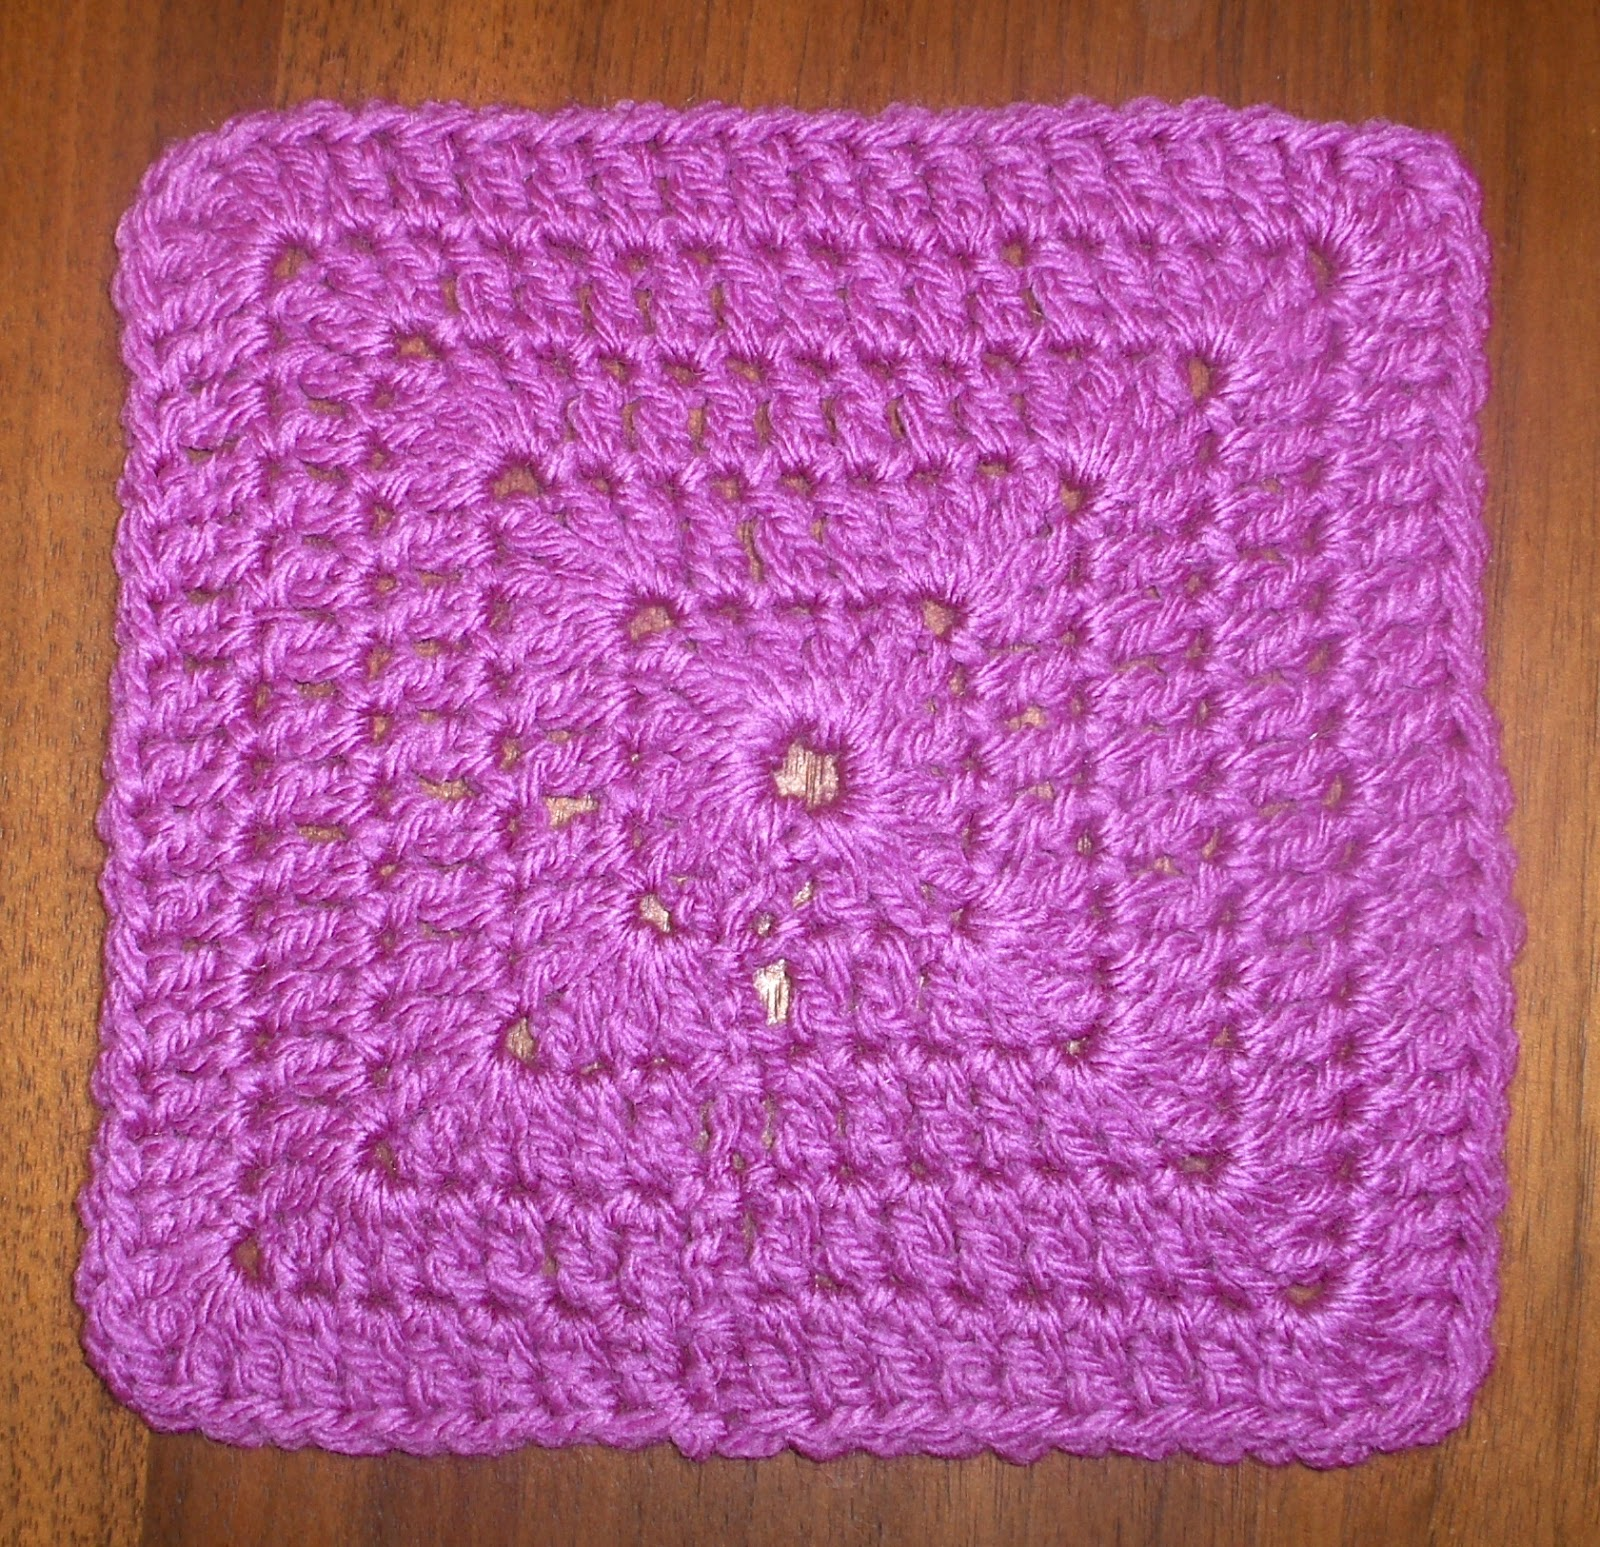 Crochet Easy Granny Square Patterns : Das Crochet Connection: GSC (Granny Square Challenge) Update